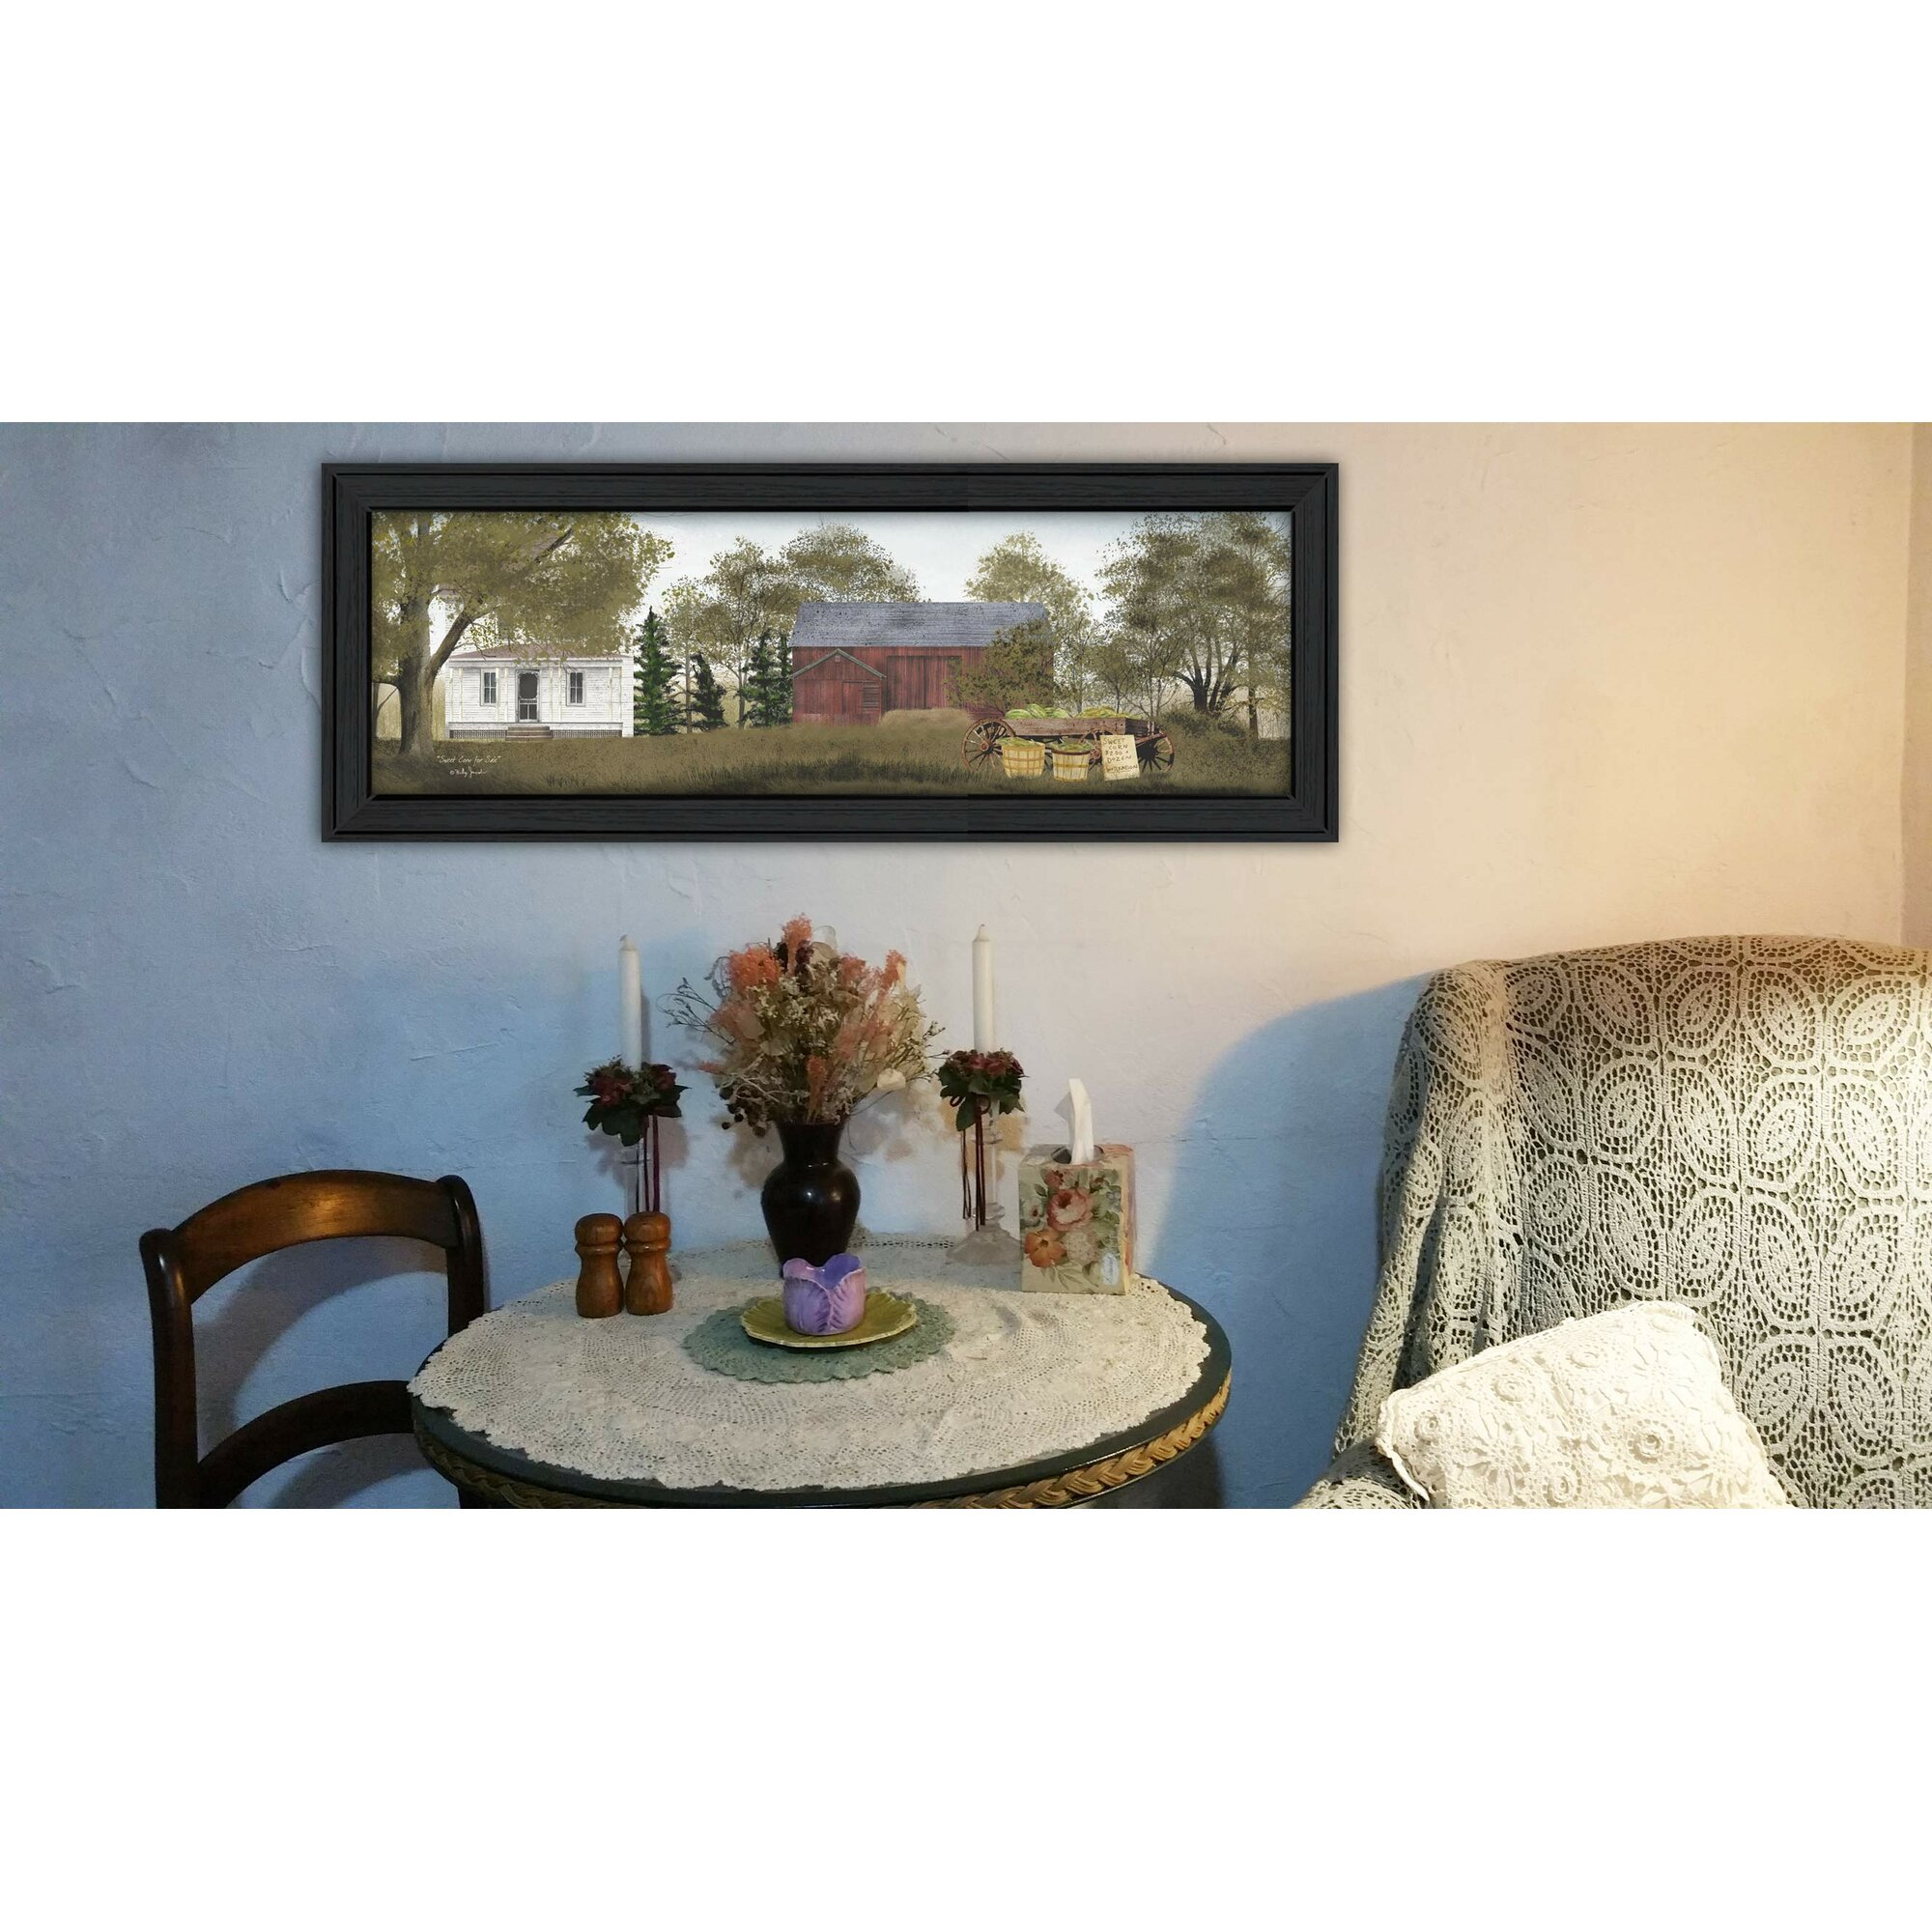 Trendy decor 4u sweet corn for sale by billy jacobs framed for Home decor 4 u